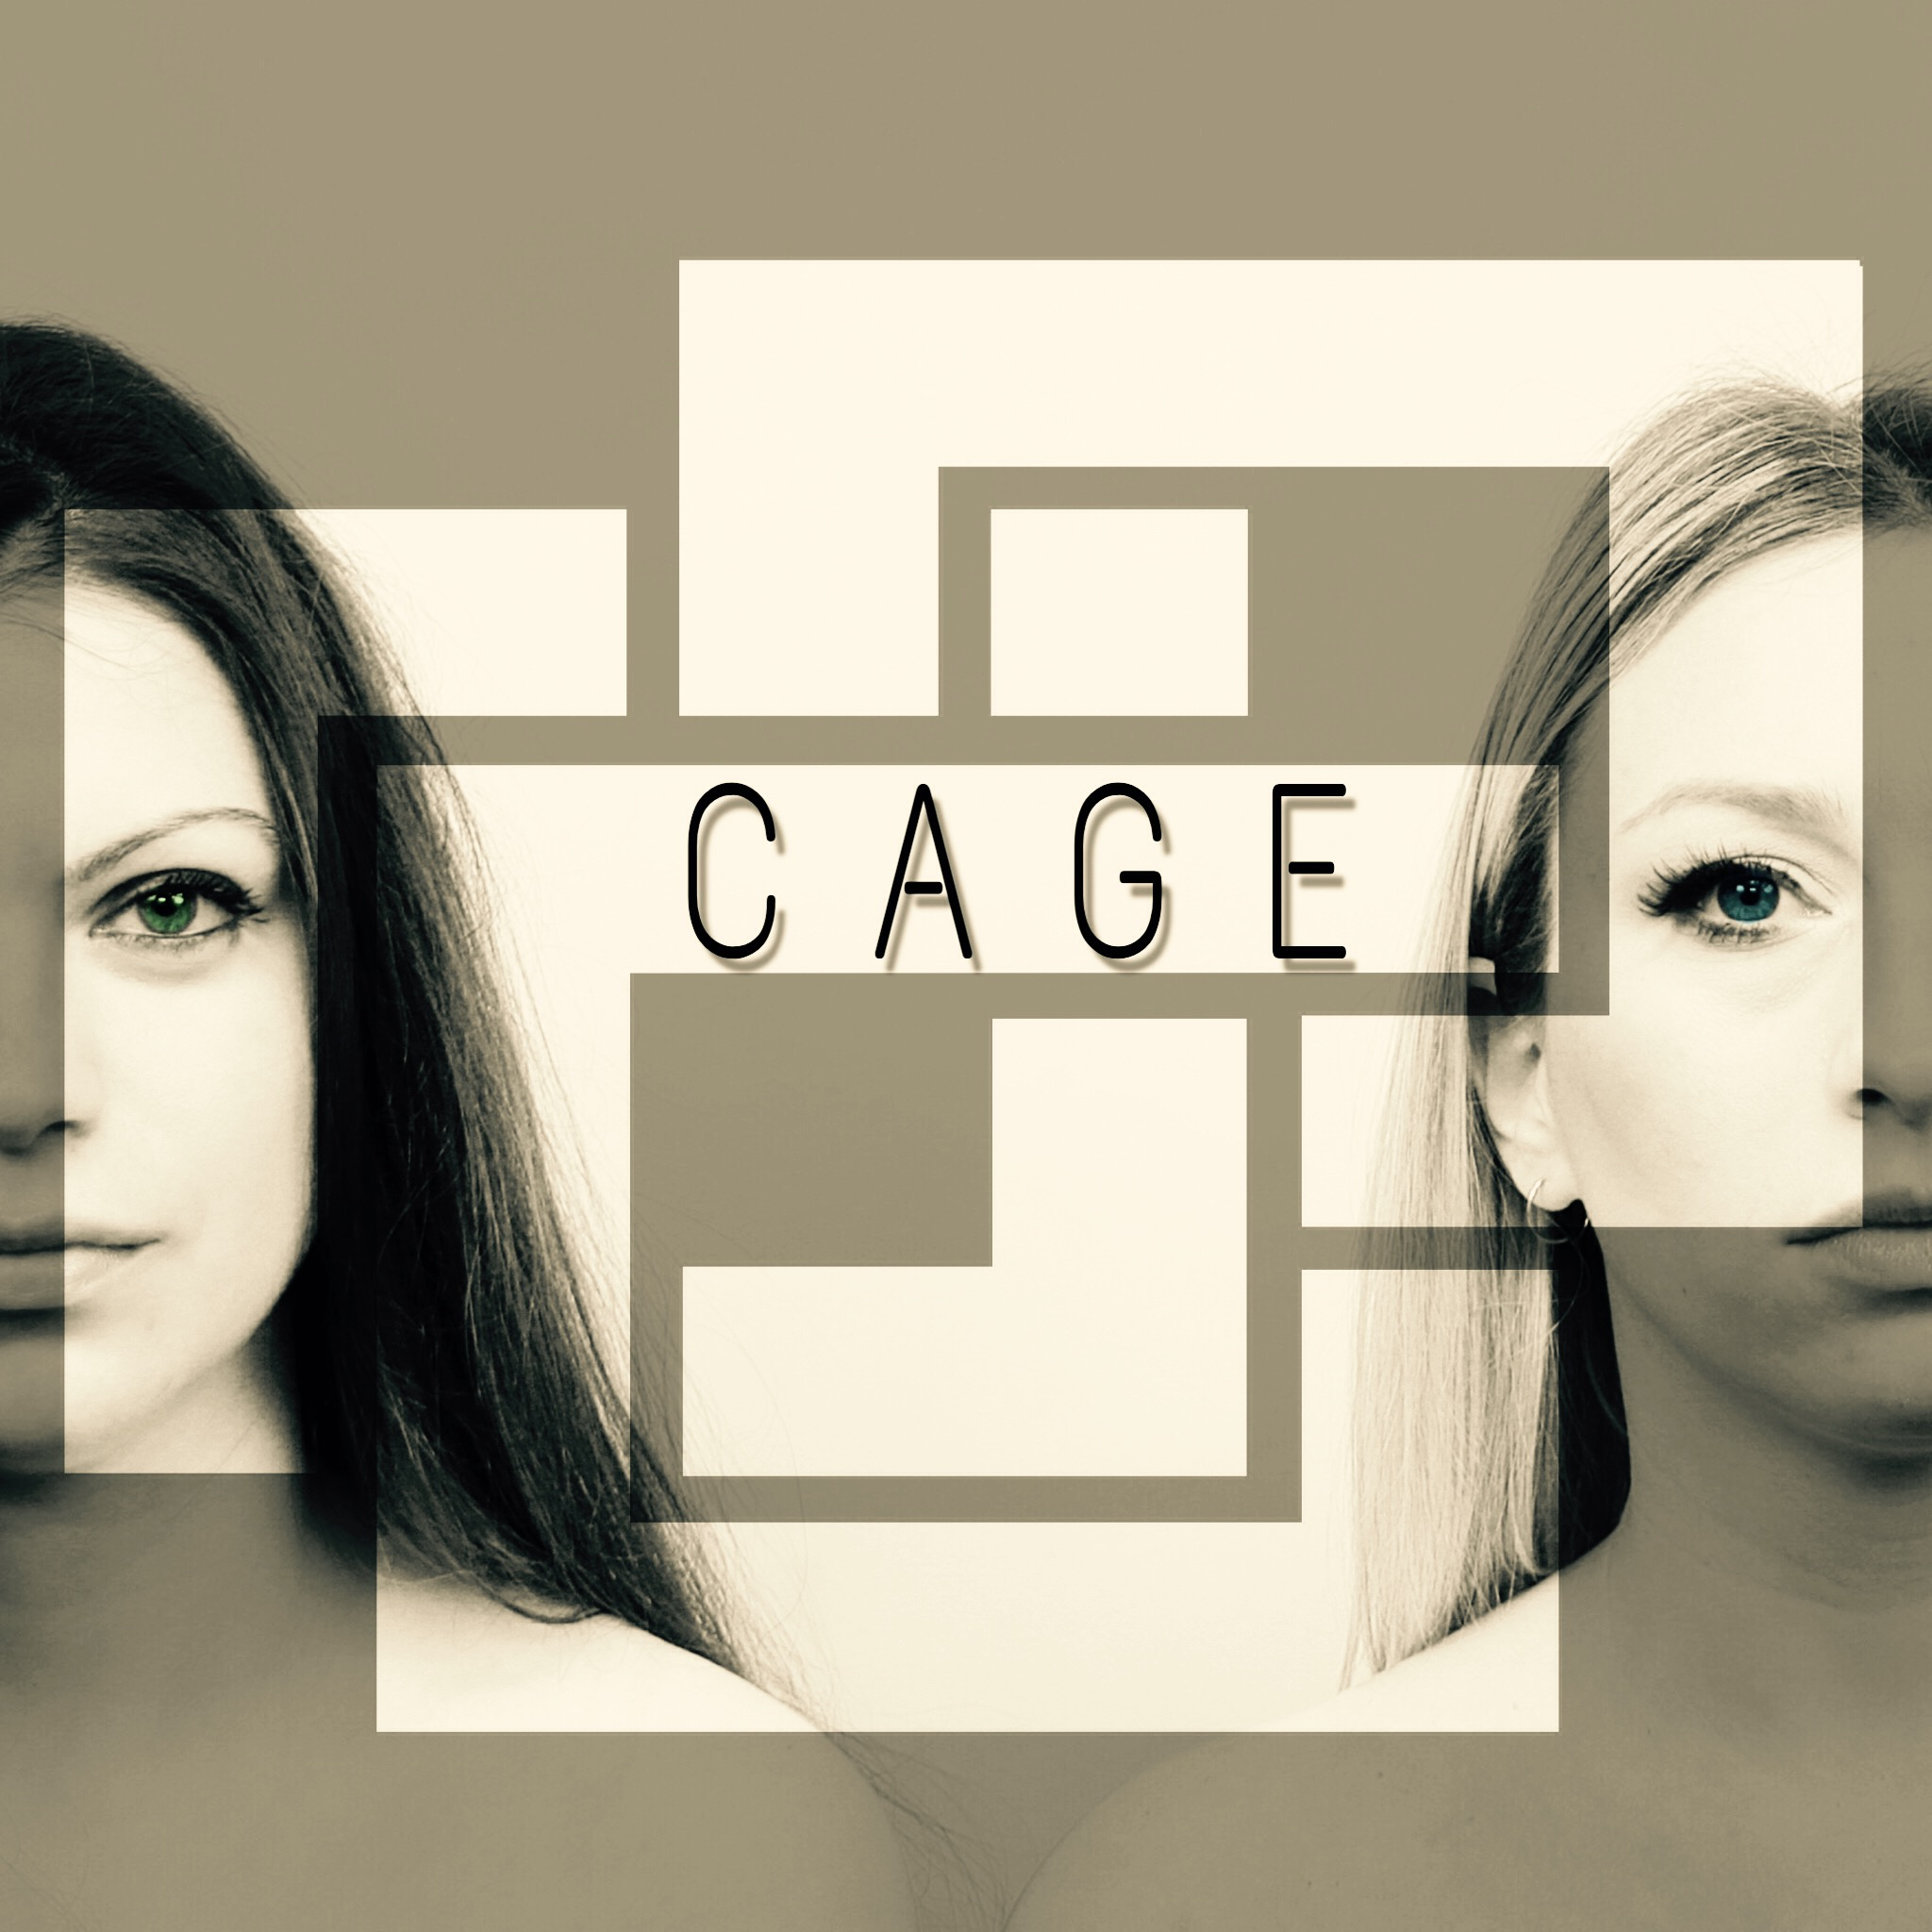 a2018_06_23_06_29_21_Cage_cover singolo.jpg